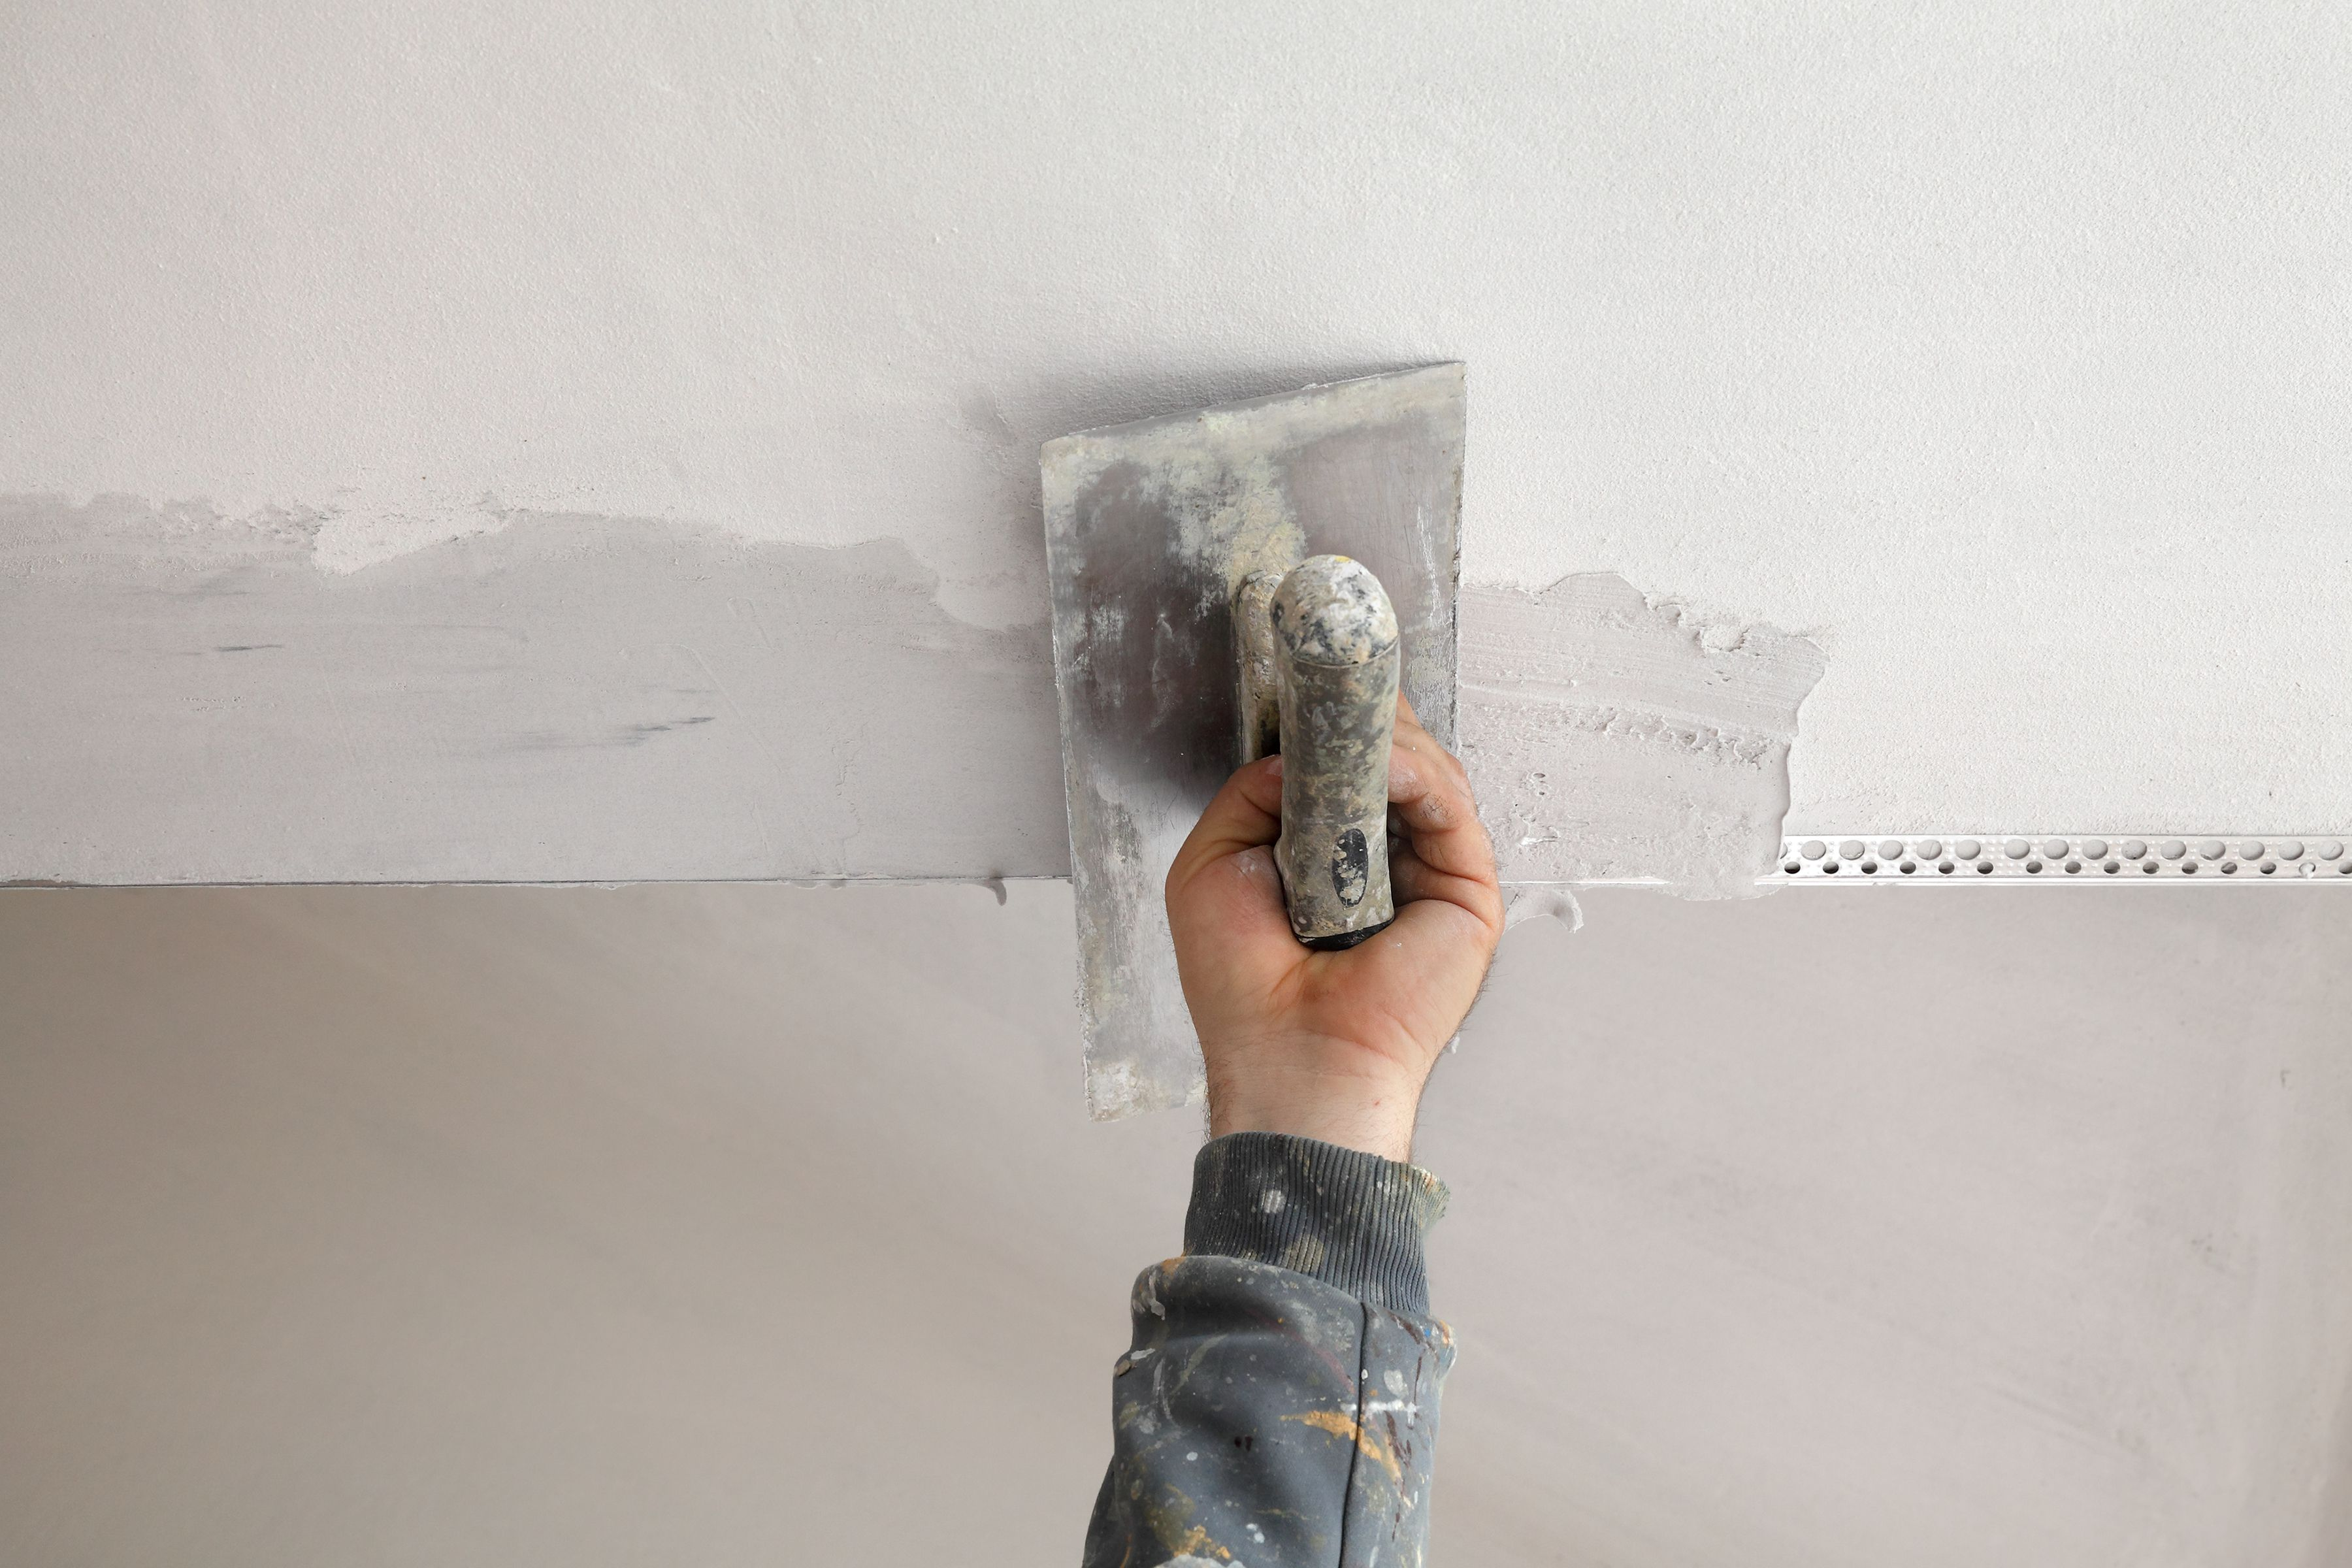 How To Repair A Metal Corner Bead On A Wall